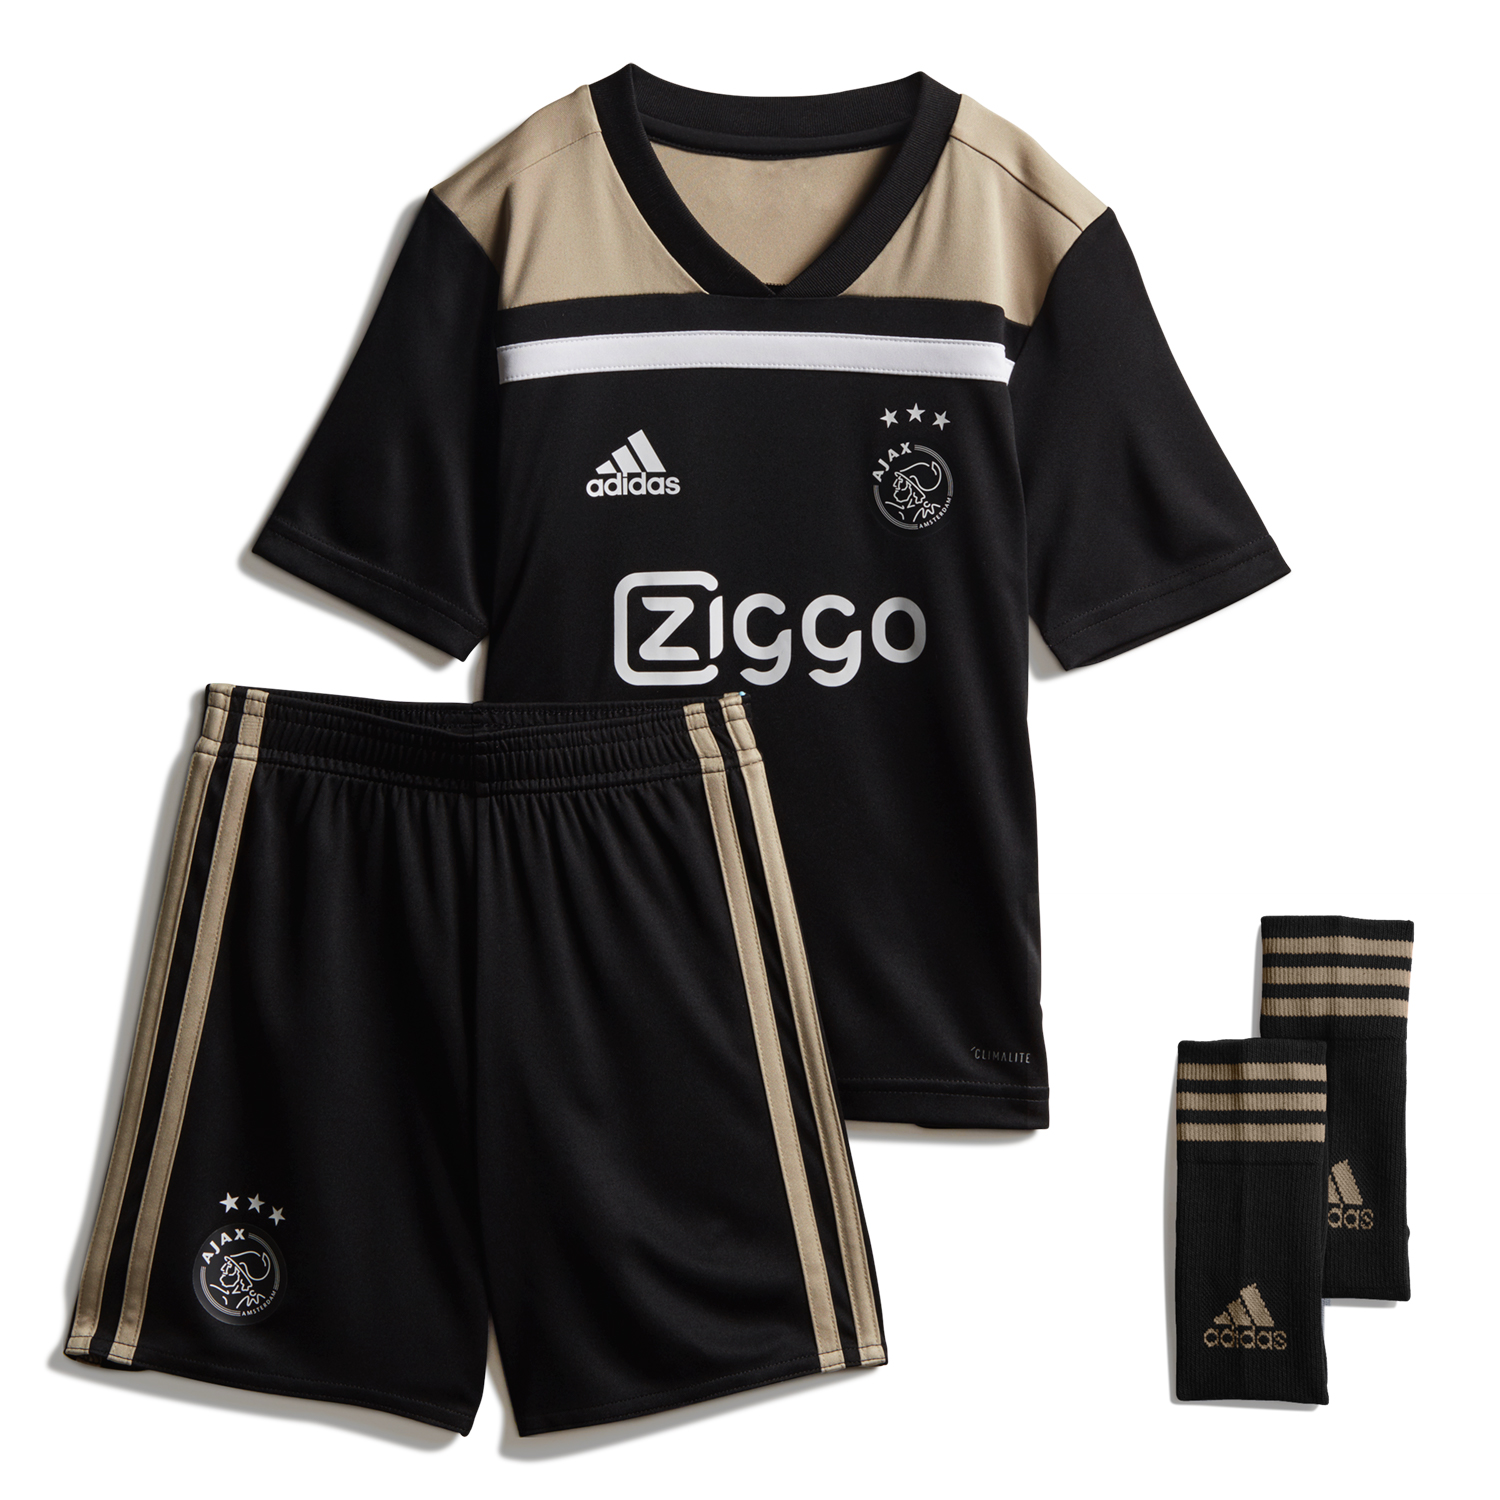 Ajax 2018/19 Away Kids Soccer Jersey Kit Children Shirt + Shorts + Socks